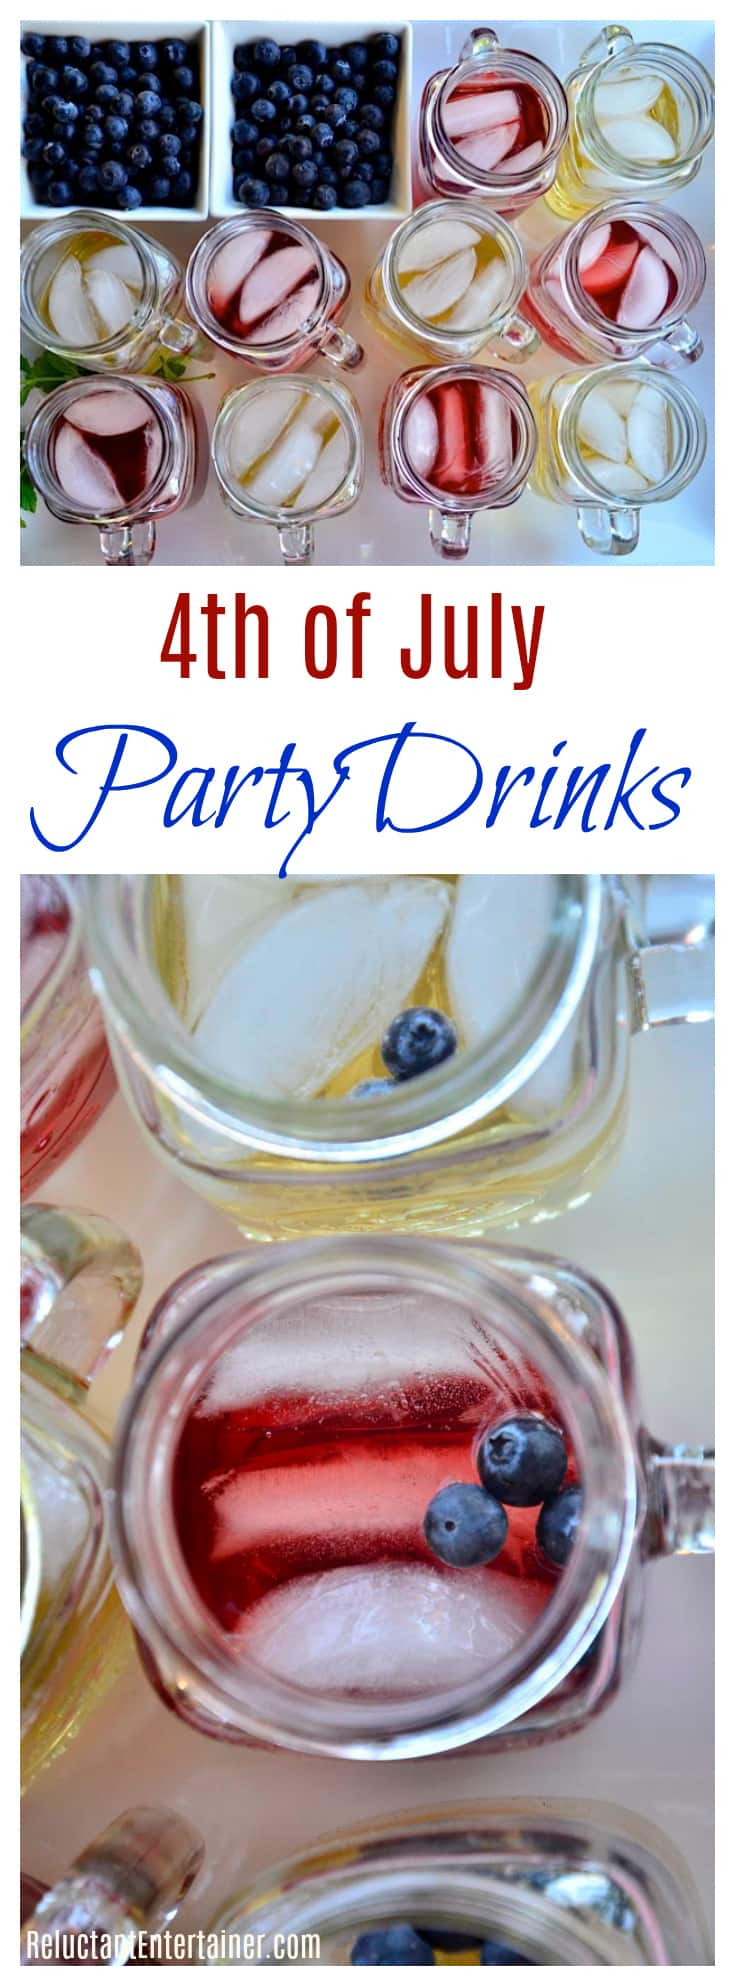 4th of July Party Drinks Display